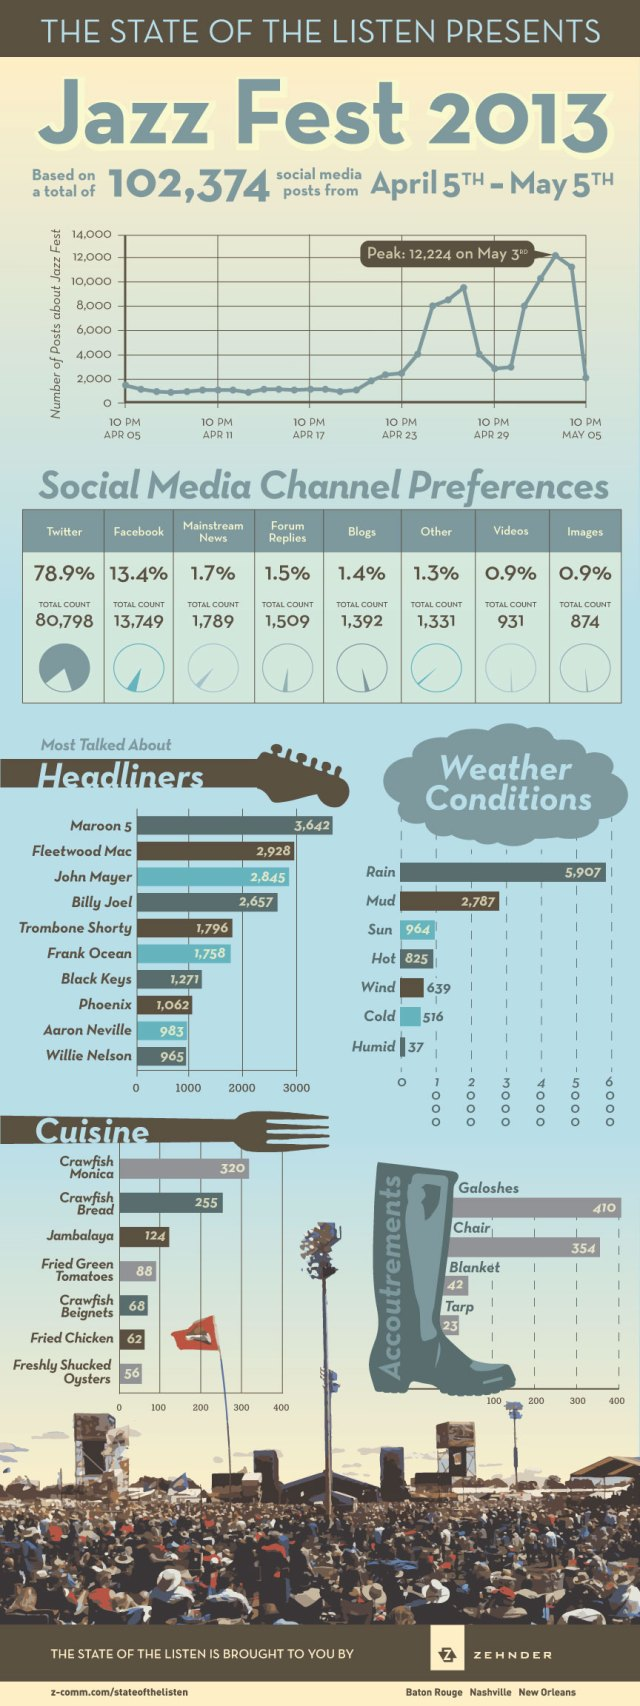 State of the Listen Jazz Fest Infographic